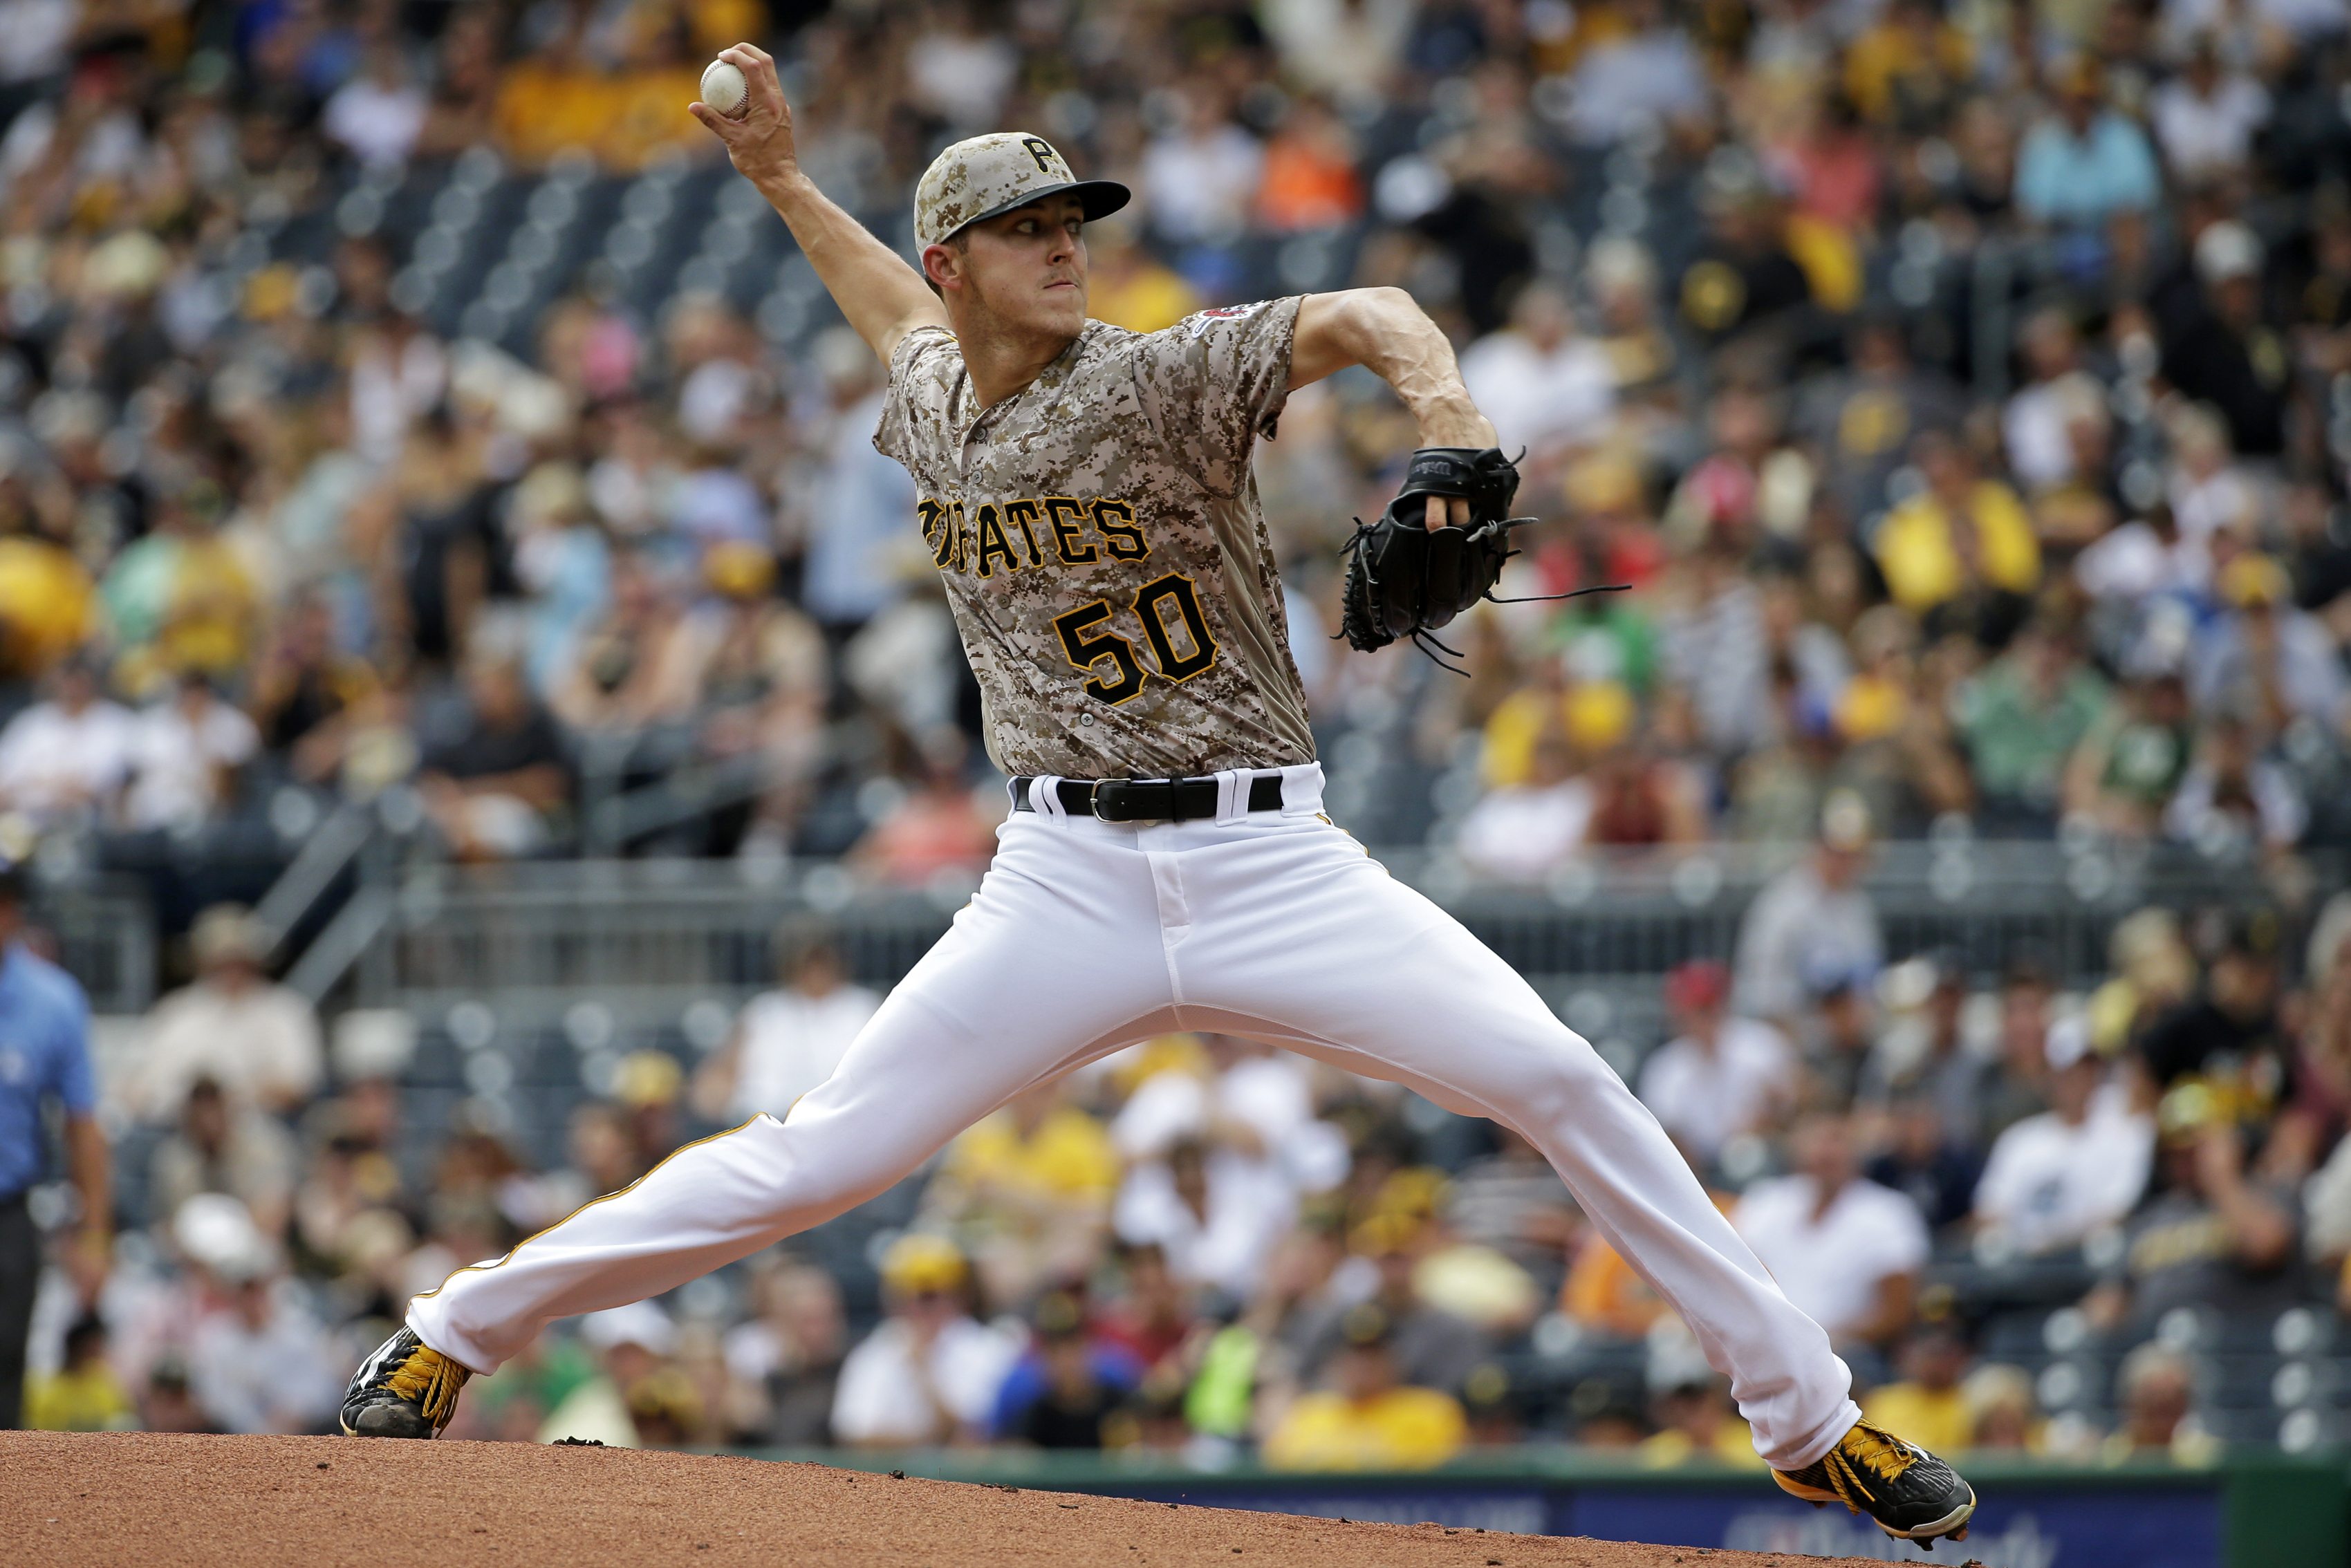 Pittsburgh Pirates starting pitcher Jameson Taillon delivers in the first inning of a baseball game against the San Diego Padres in Pittsburgh, Thursday, Aug. 11, 2016. (AP Photo/Gene J. Puskar)